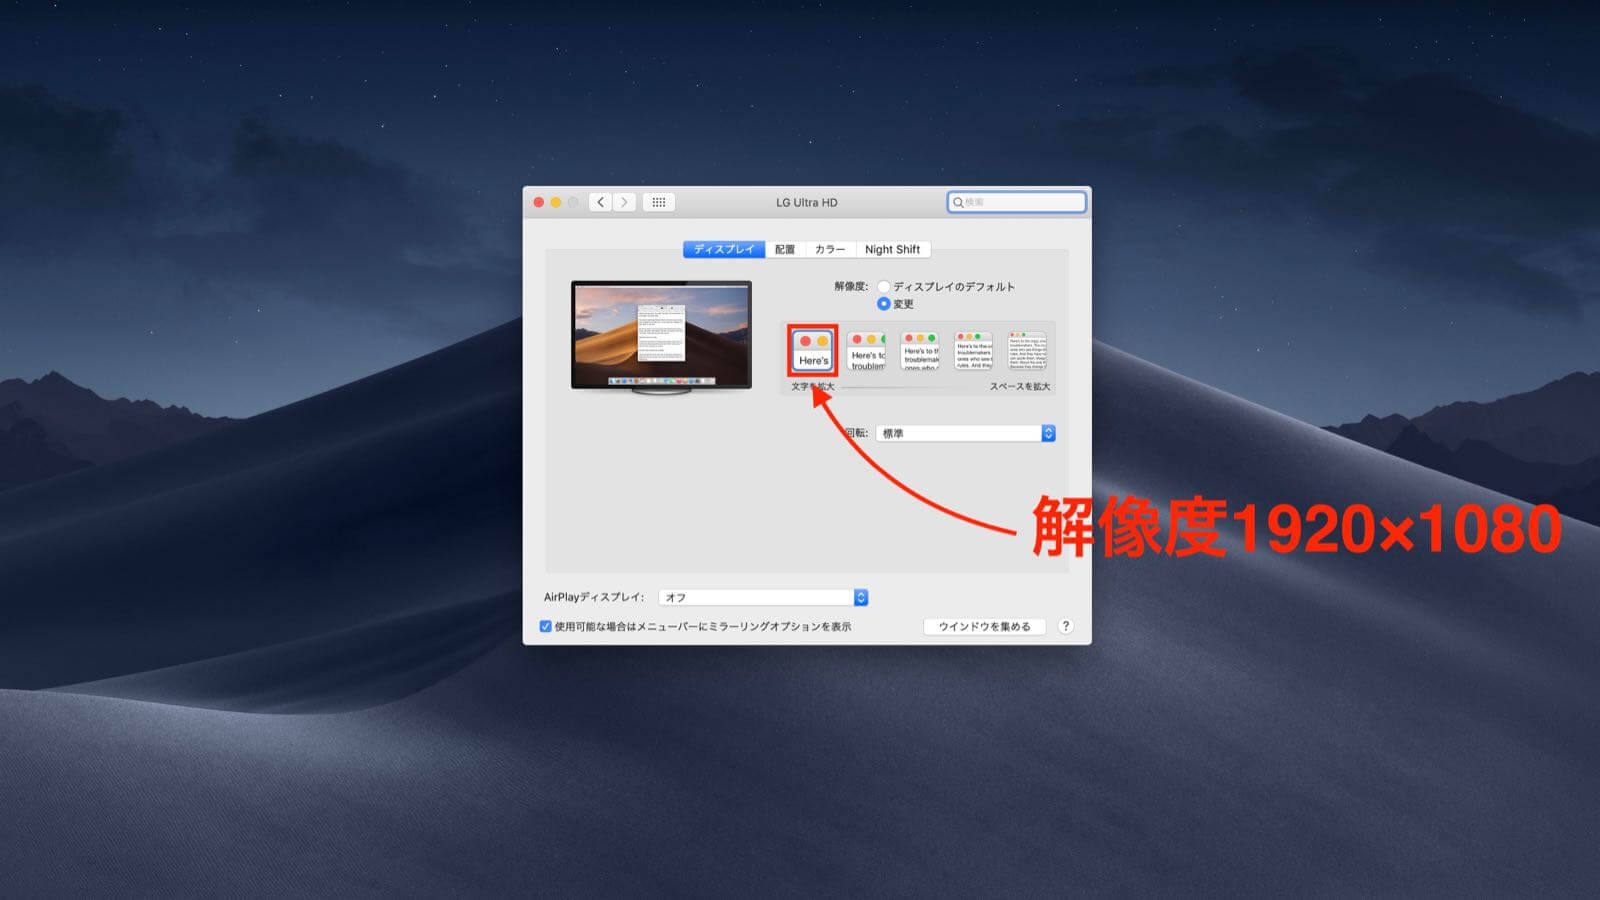 0211 How to set the display resolution of Mac 06